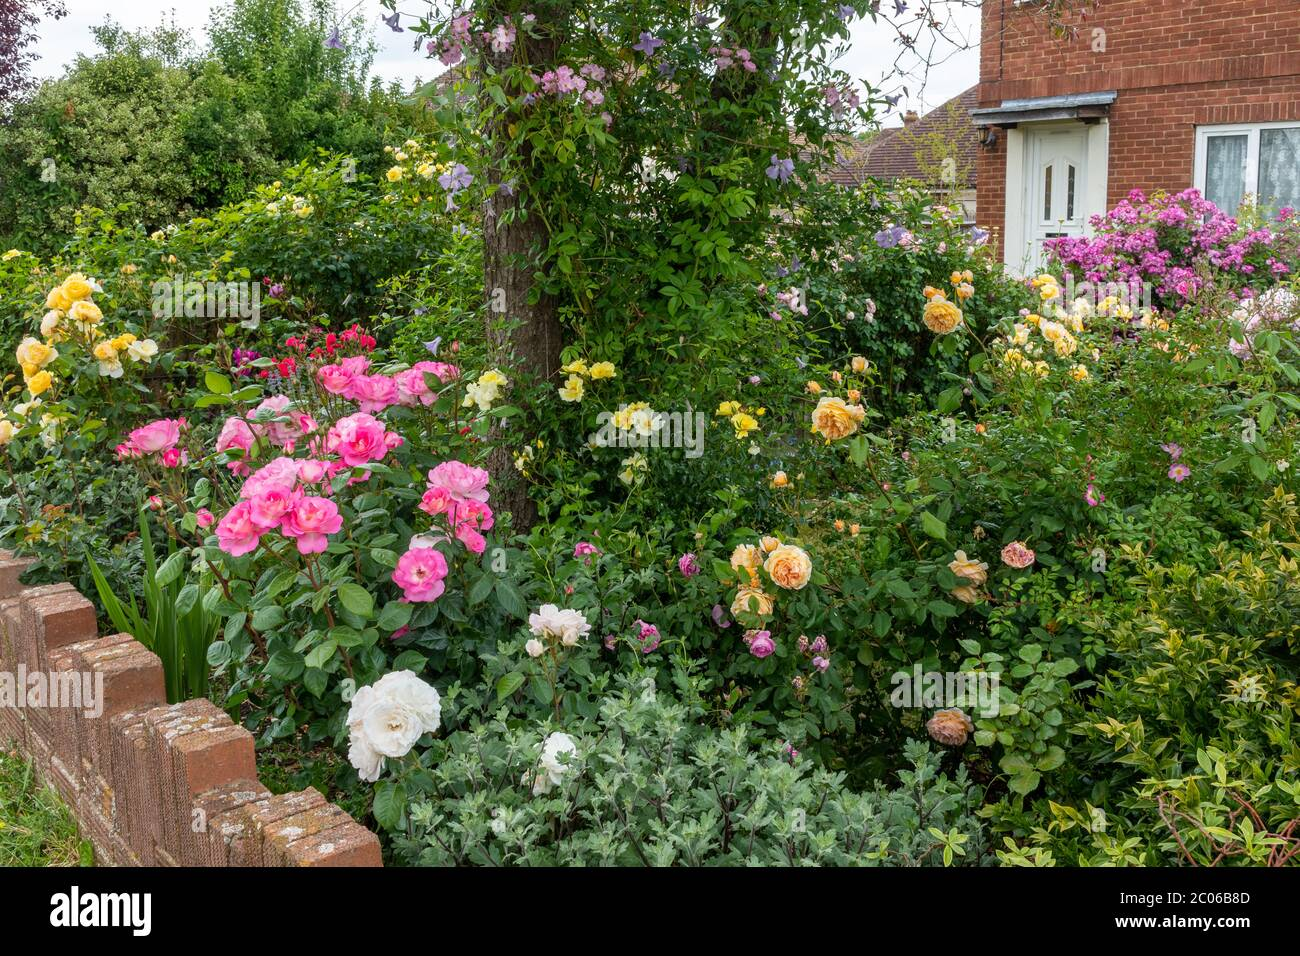 variety-of-colourful-colorful-roses-in-a-front-garden-during-june-uk-2C06B8D.jpg